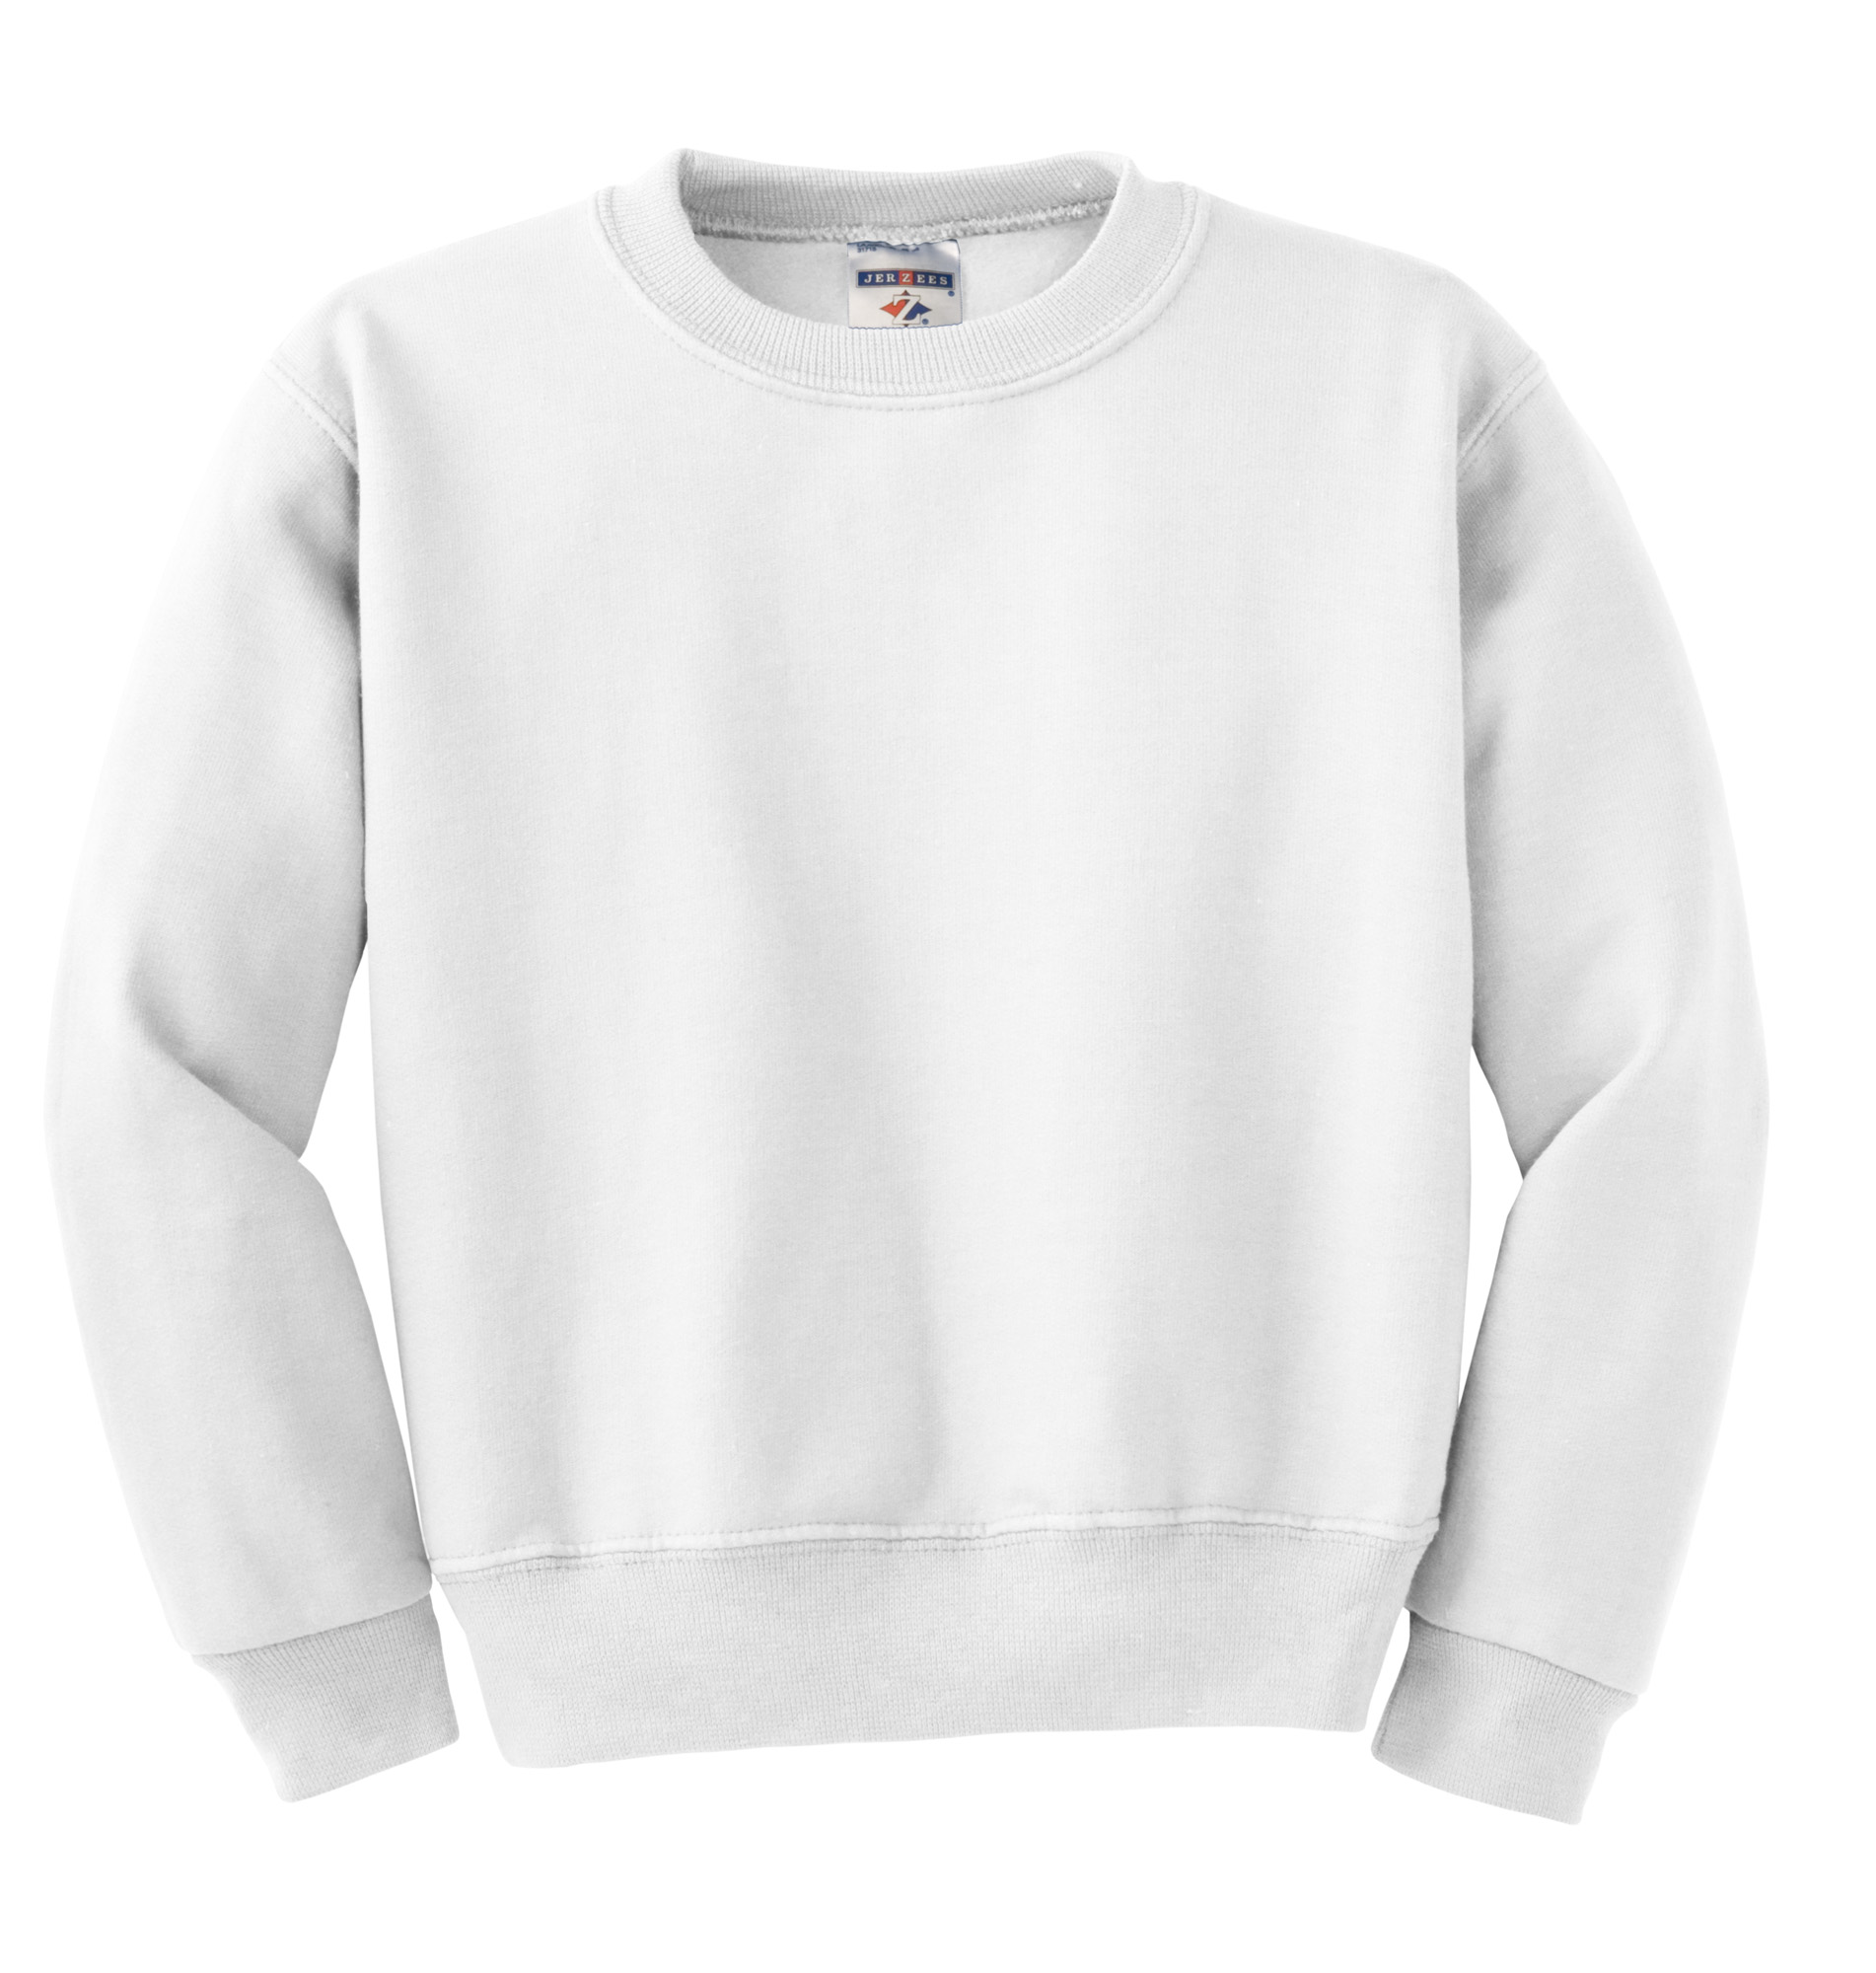 Mens Long Sleeve Crew Neck Shirts